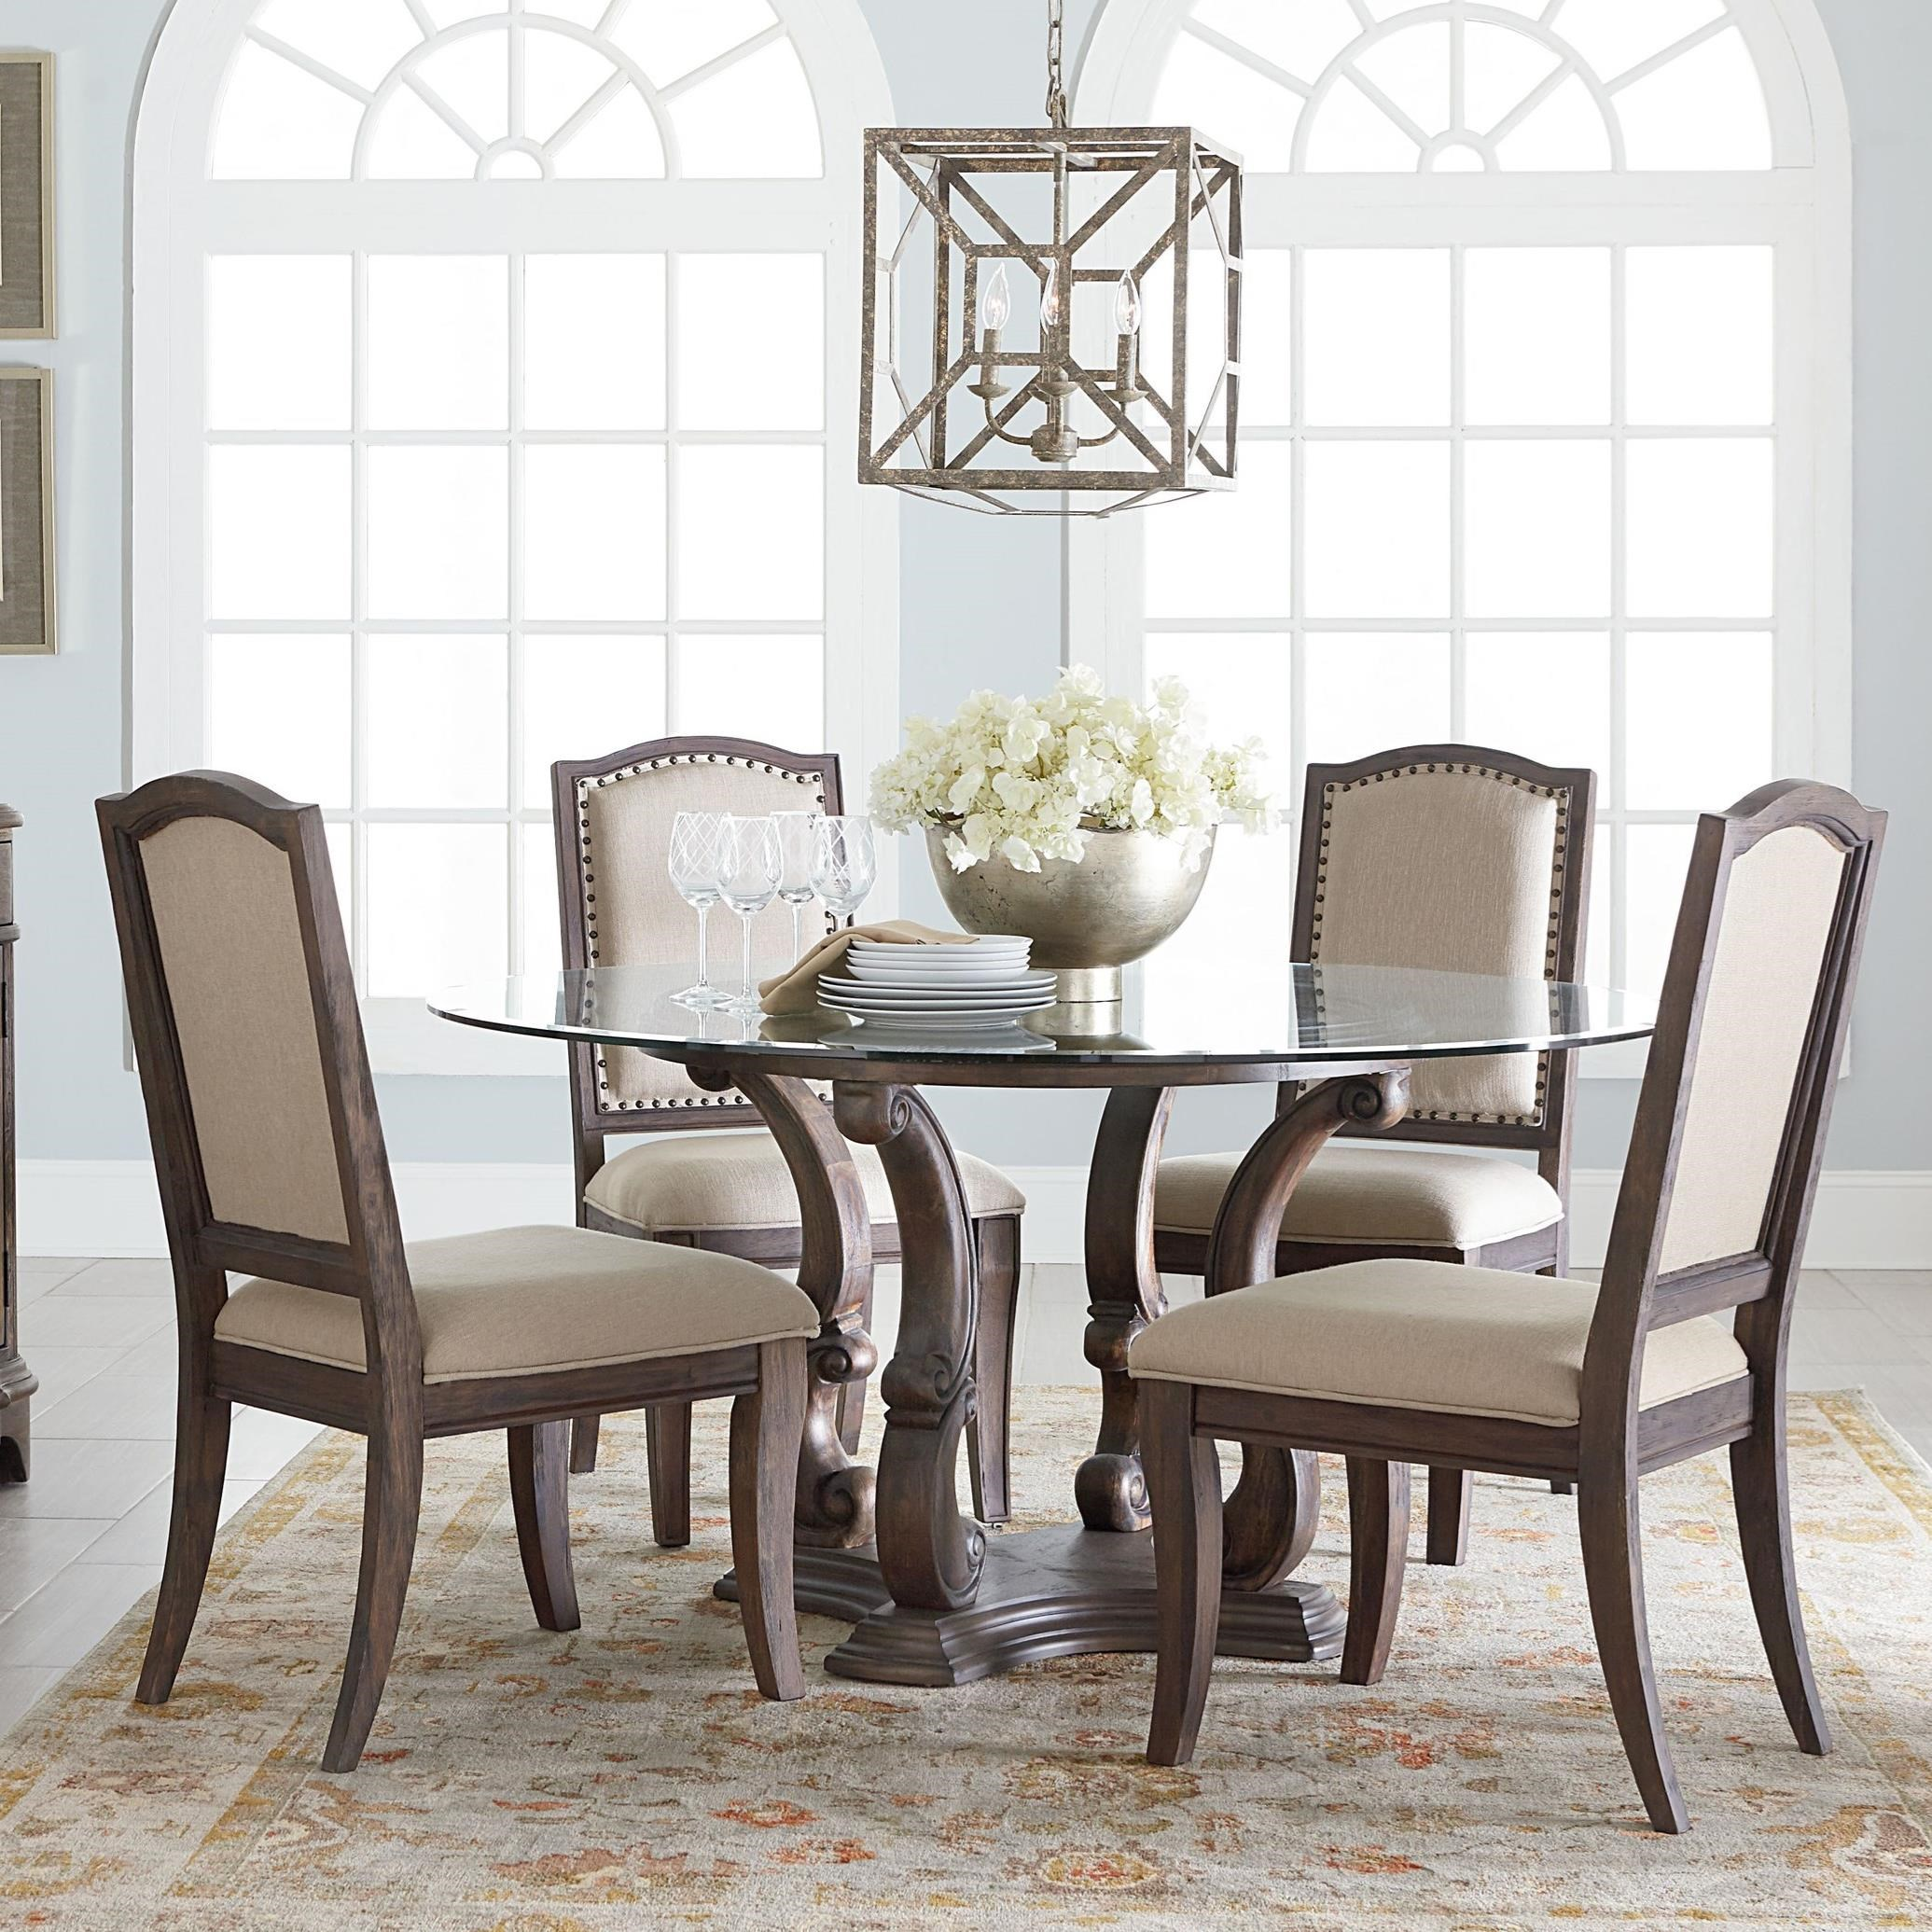 Standard Furniture Dining Room Sets: Standard Furniture Parliament Round Table And Chair Set